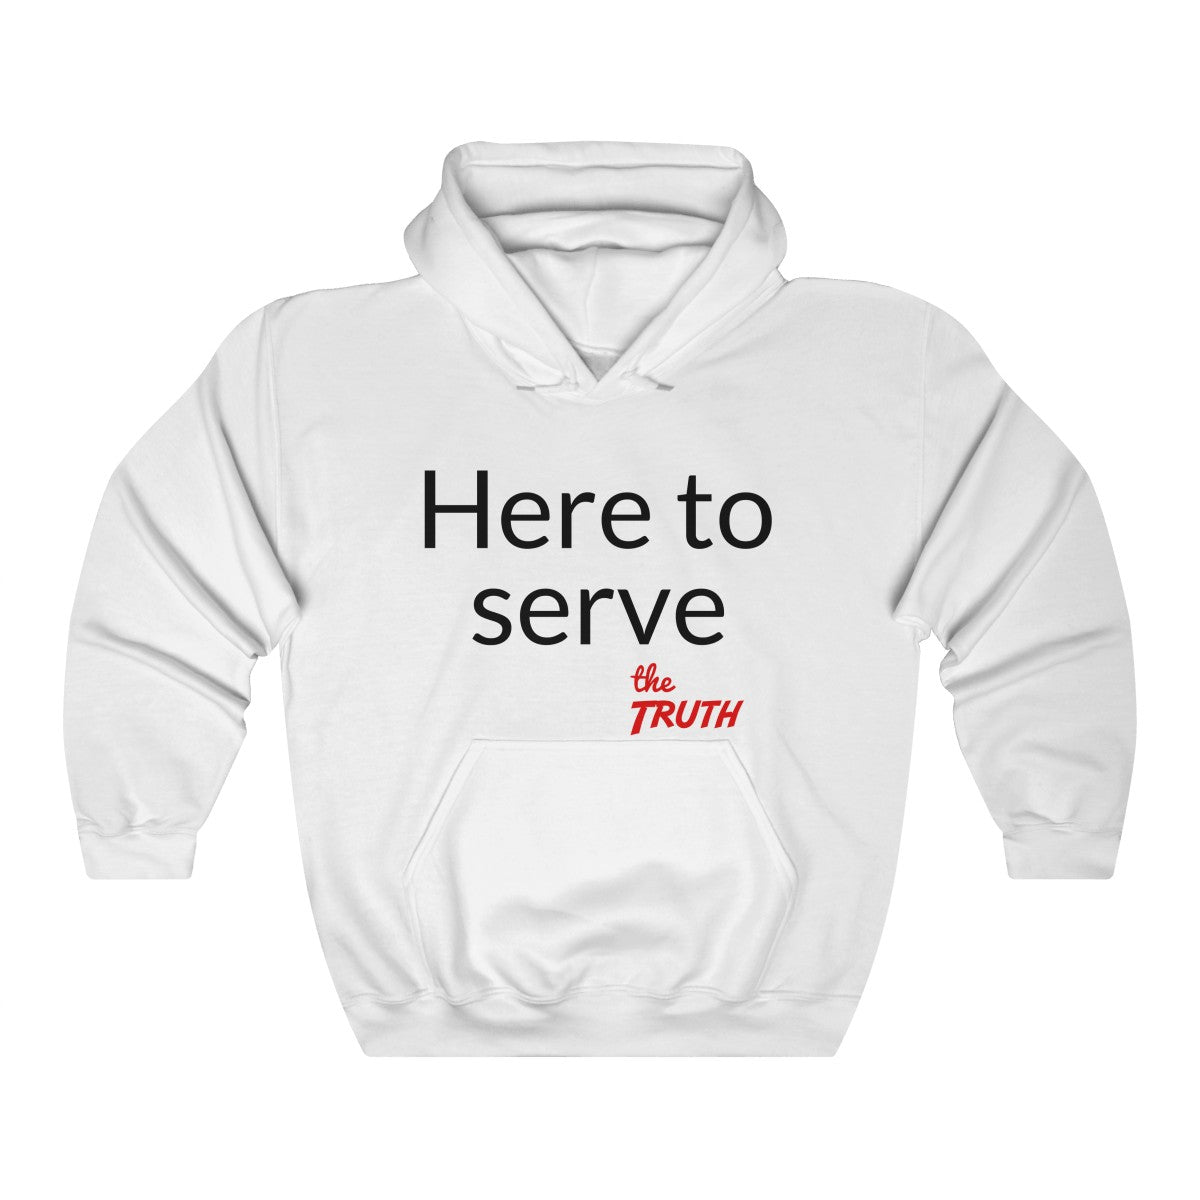 Here to serve the Truth. Christian Hoodie to declare why you (and the Truth) are here